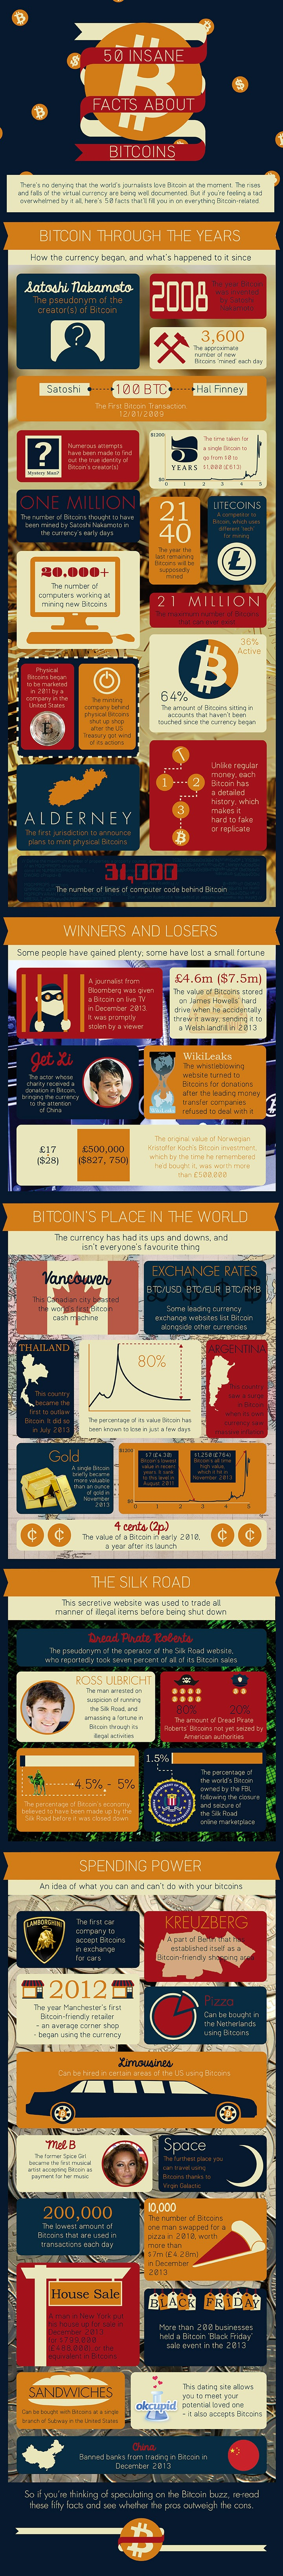 1394042096-50-insane-facts-bitcoin-infographic